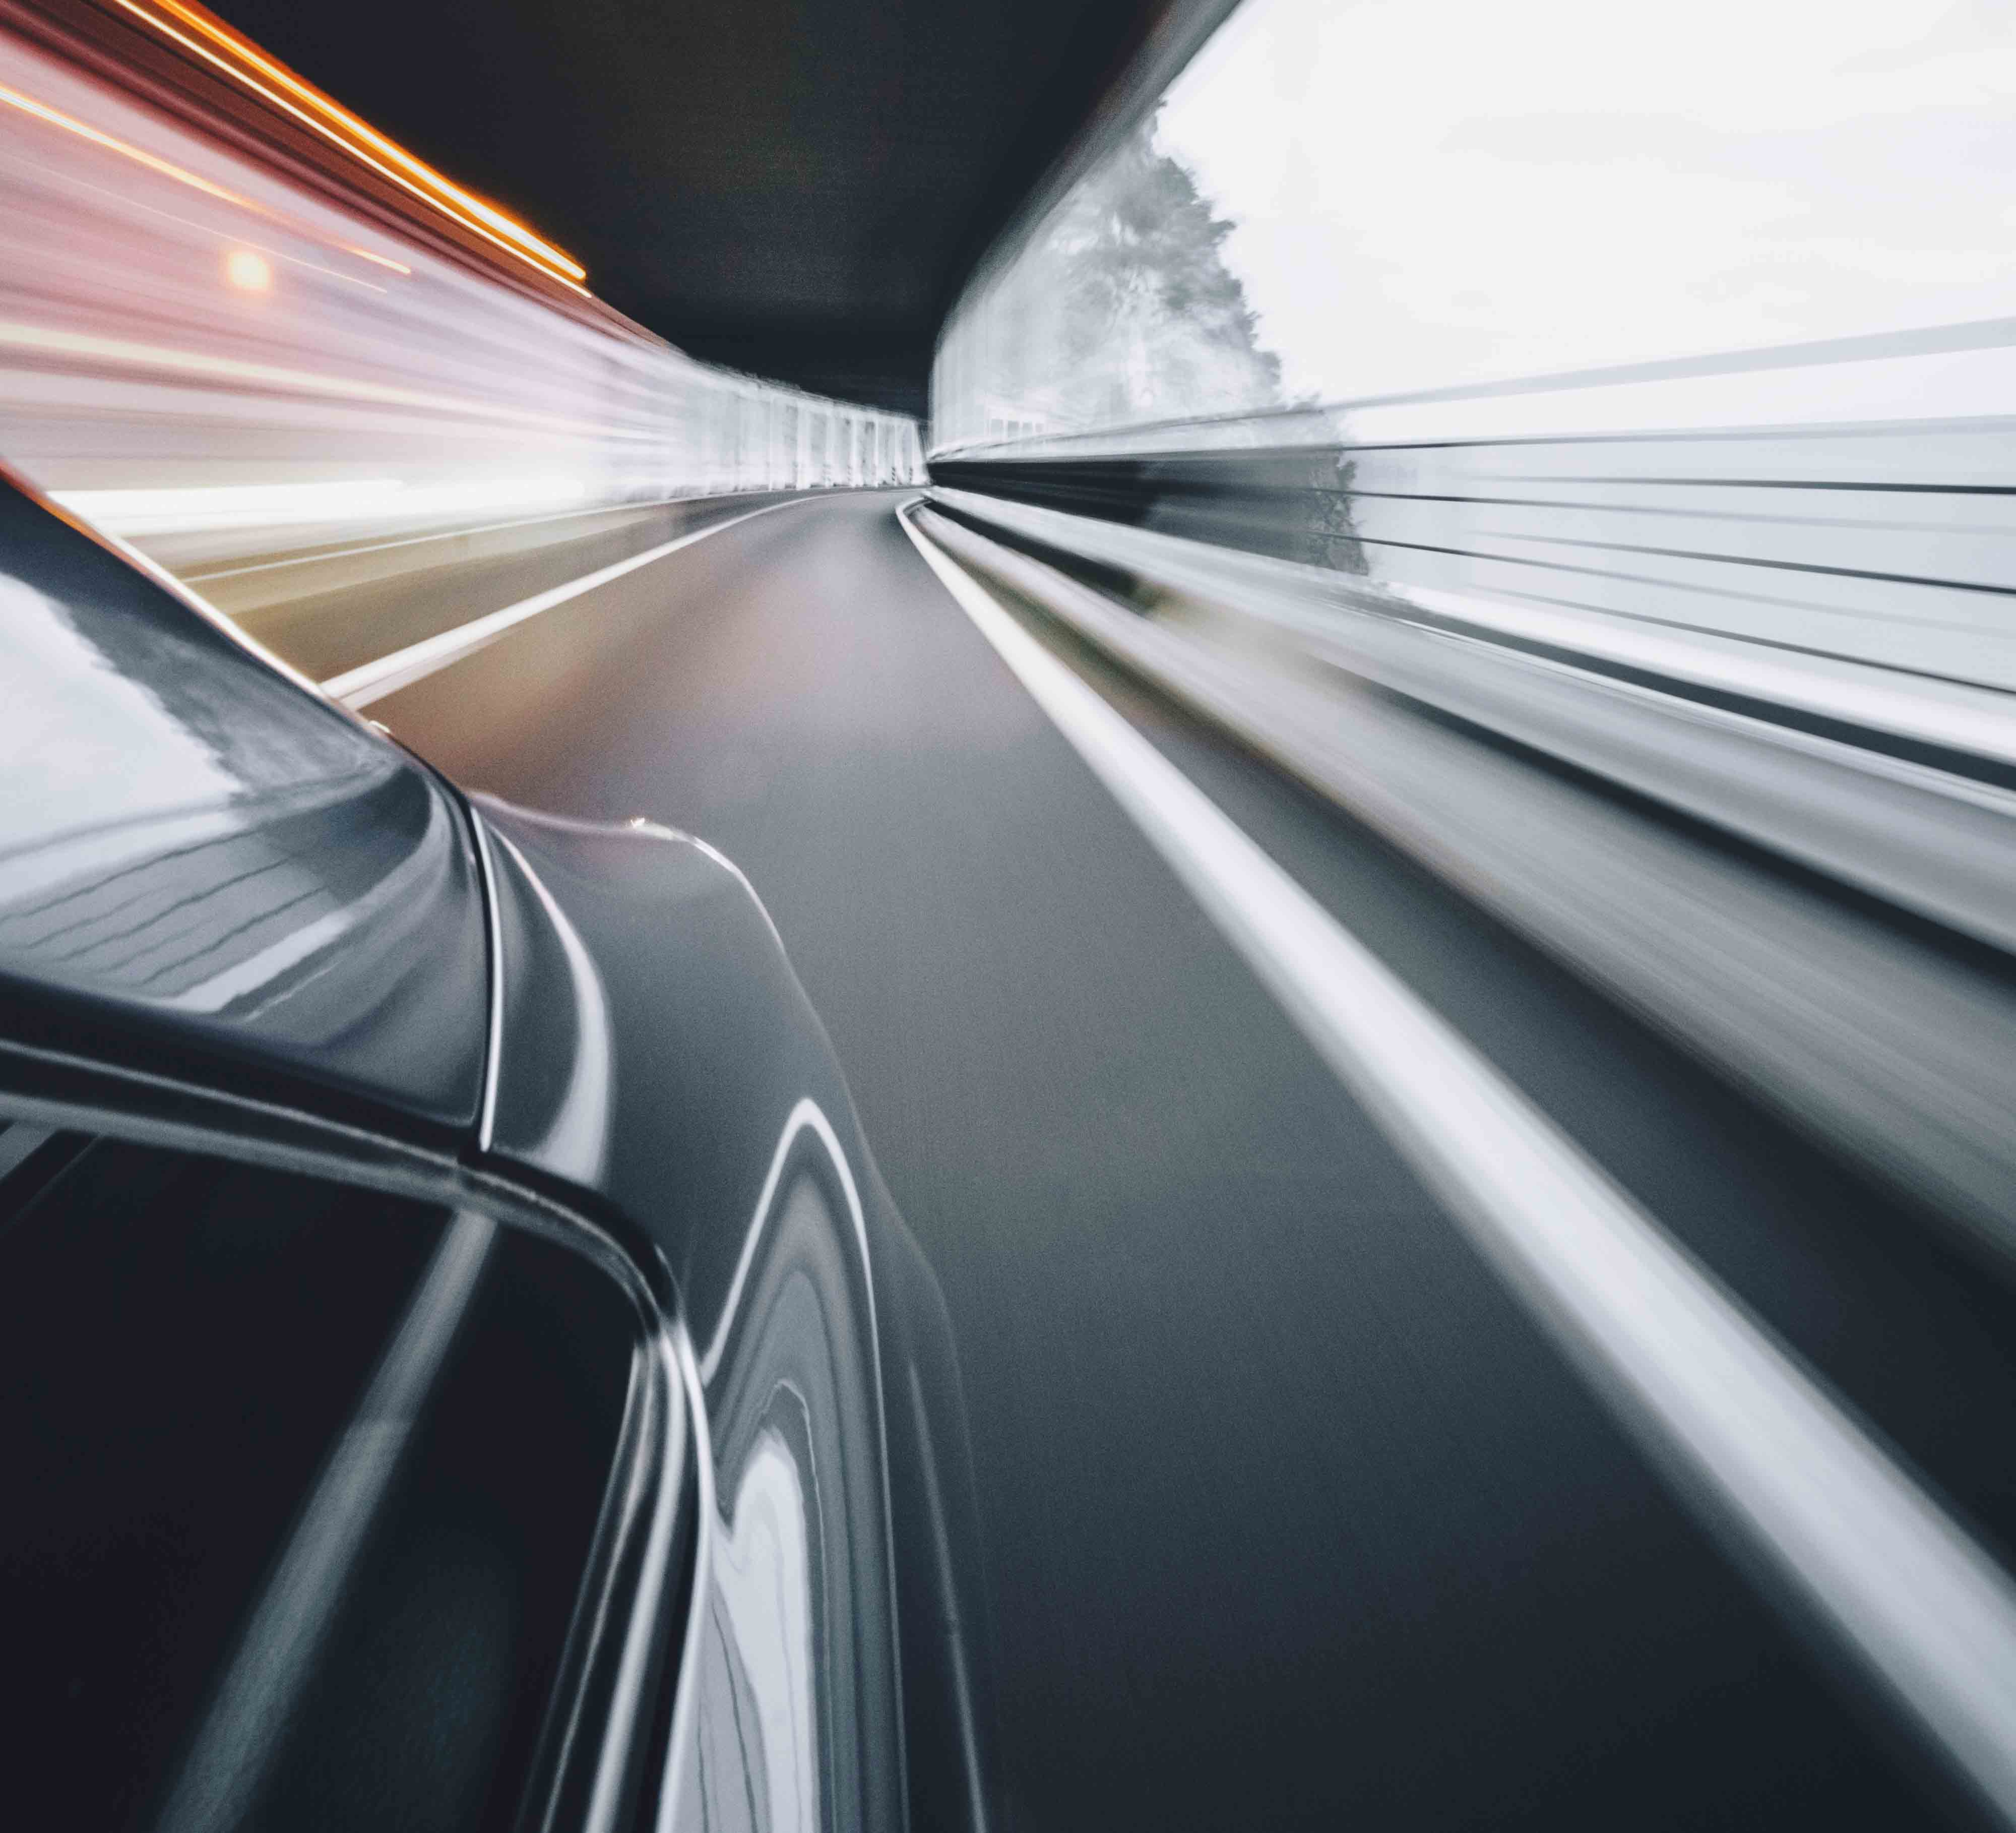 Car travelling fast through a tunnel